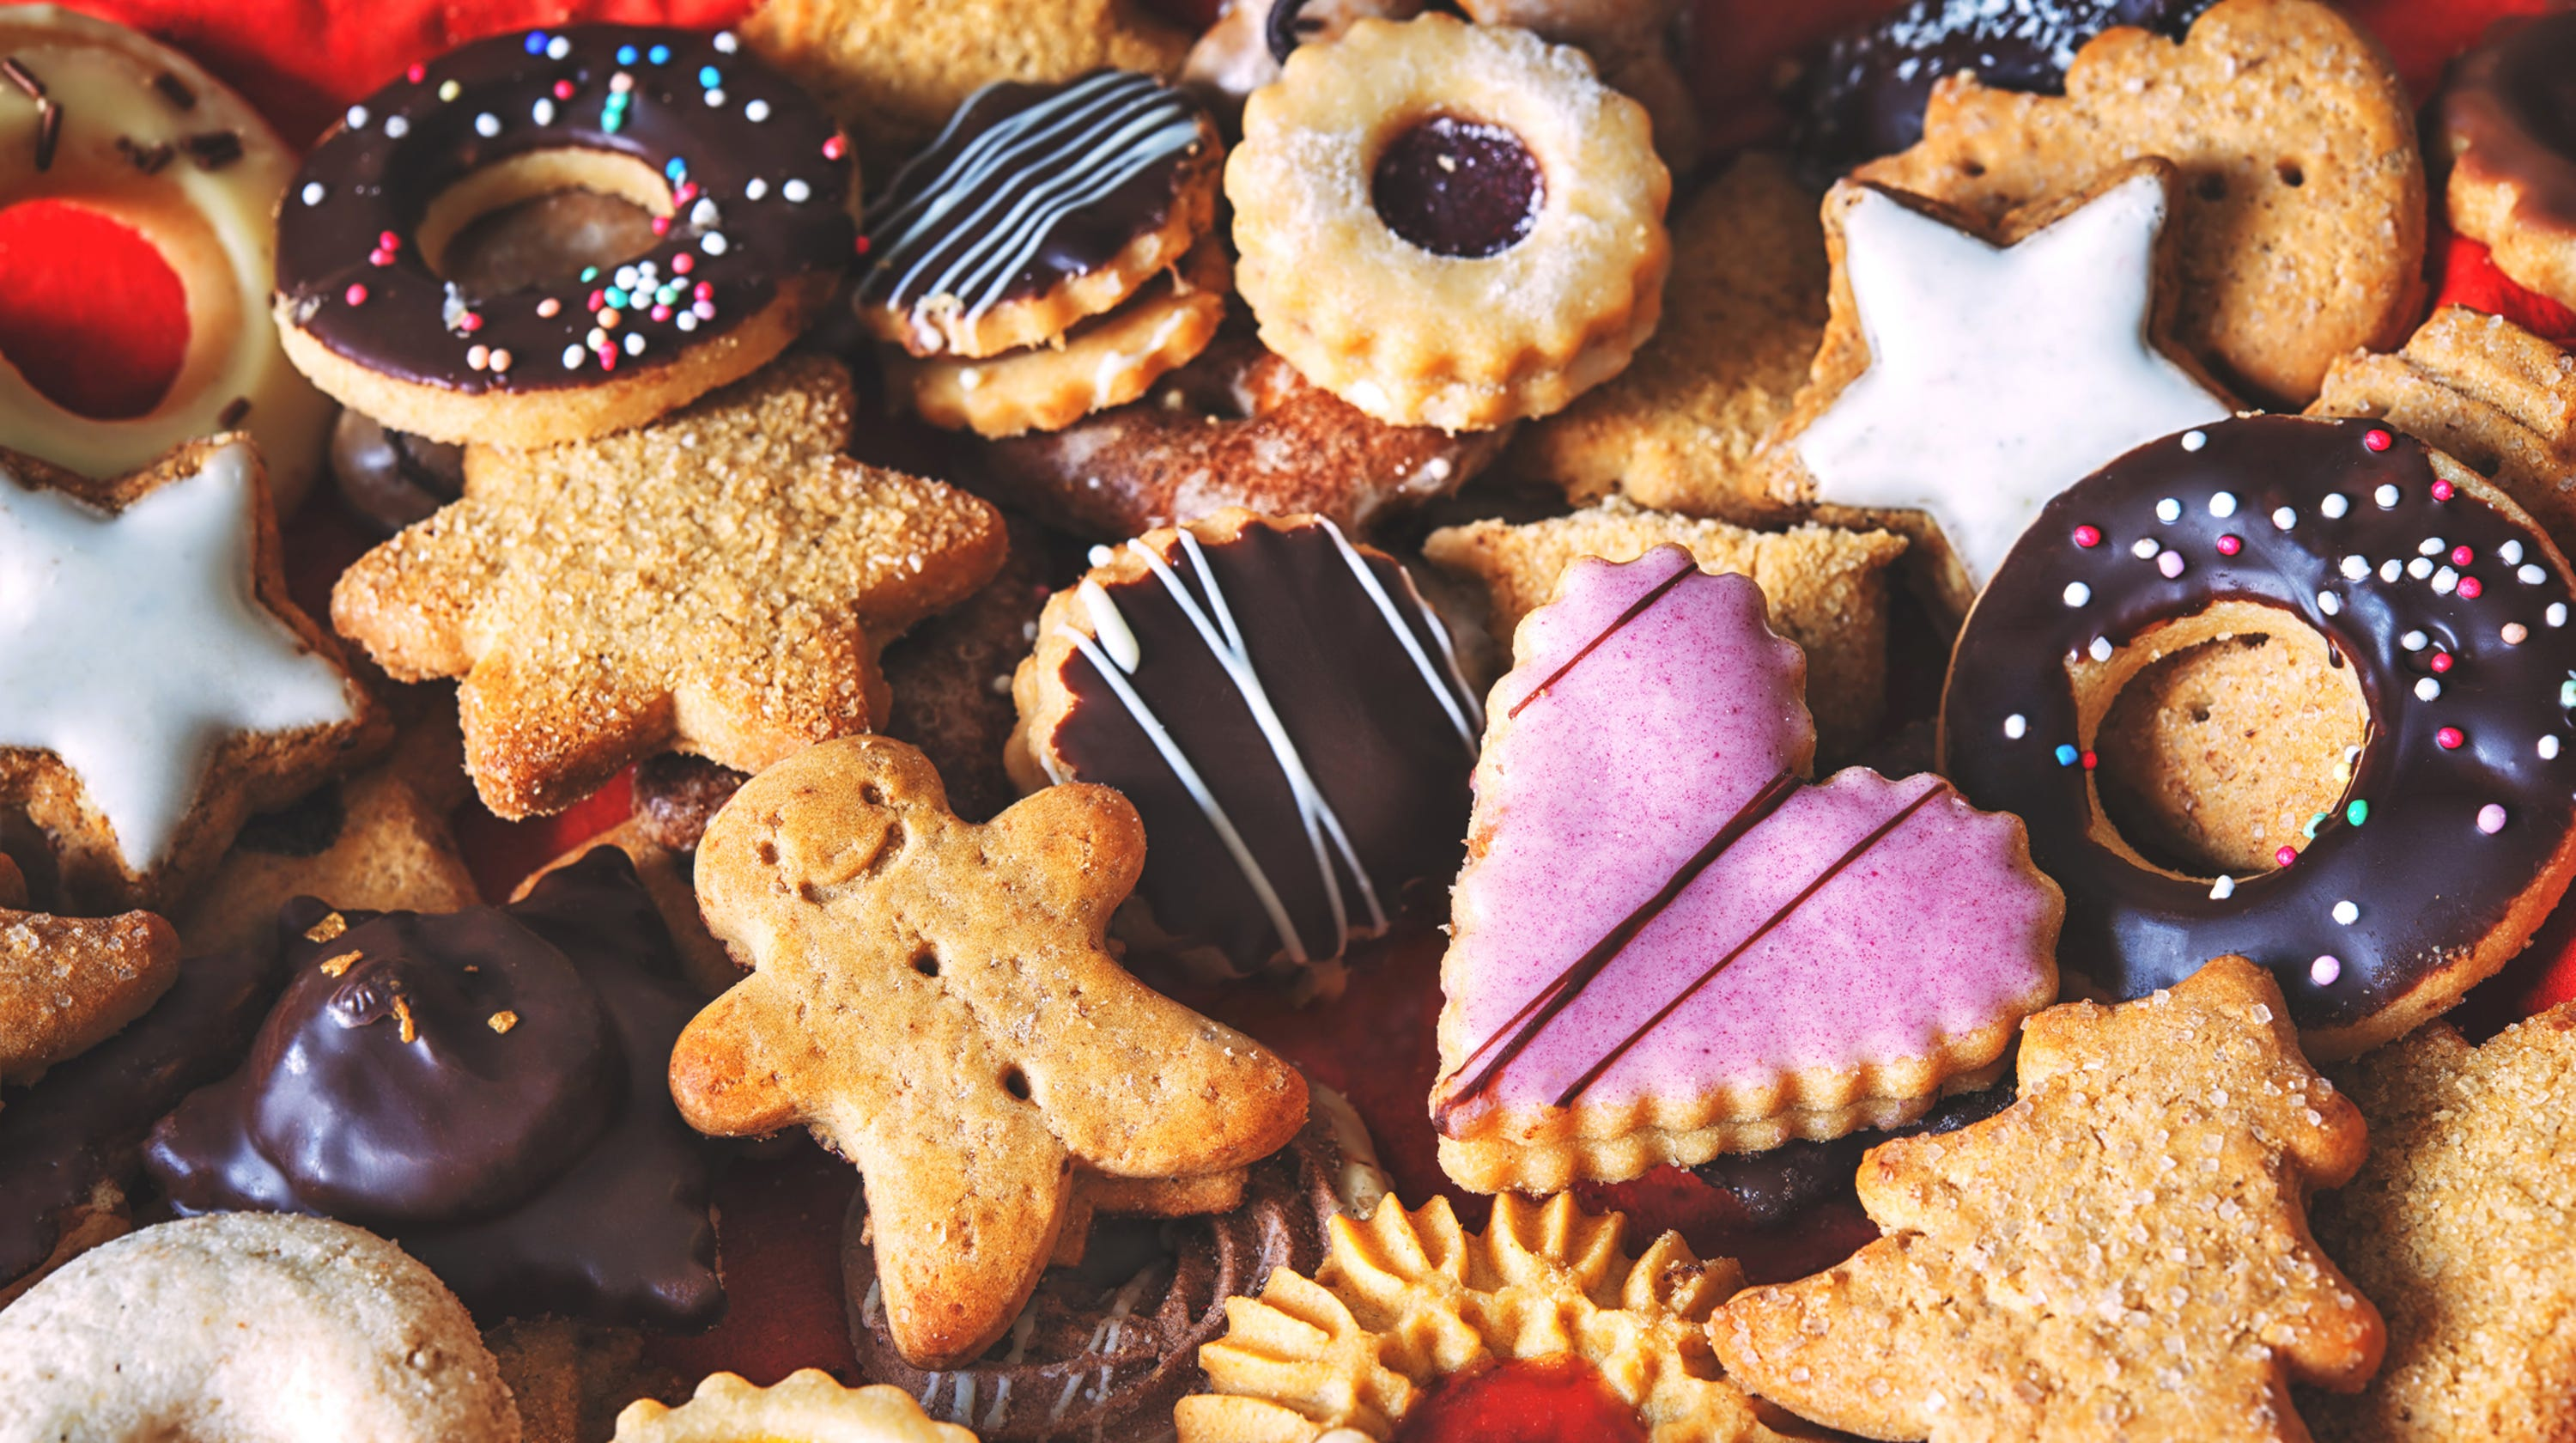 Holiday Baking Traditions Include Christmas Cookies For The Holidays